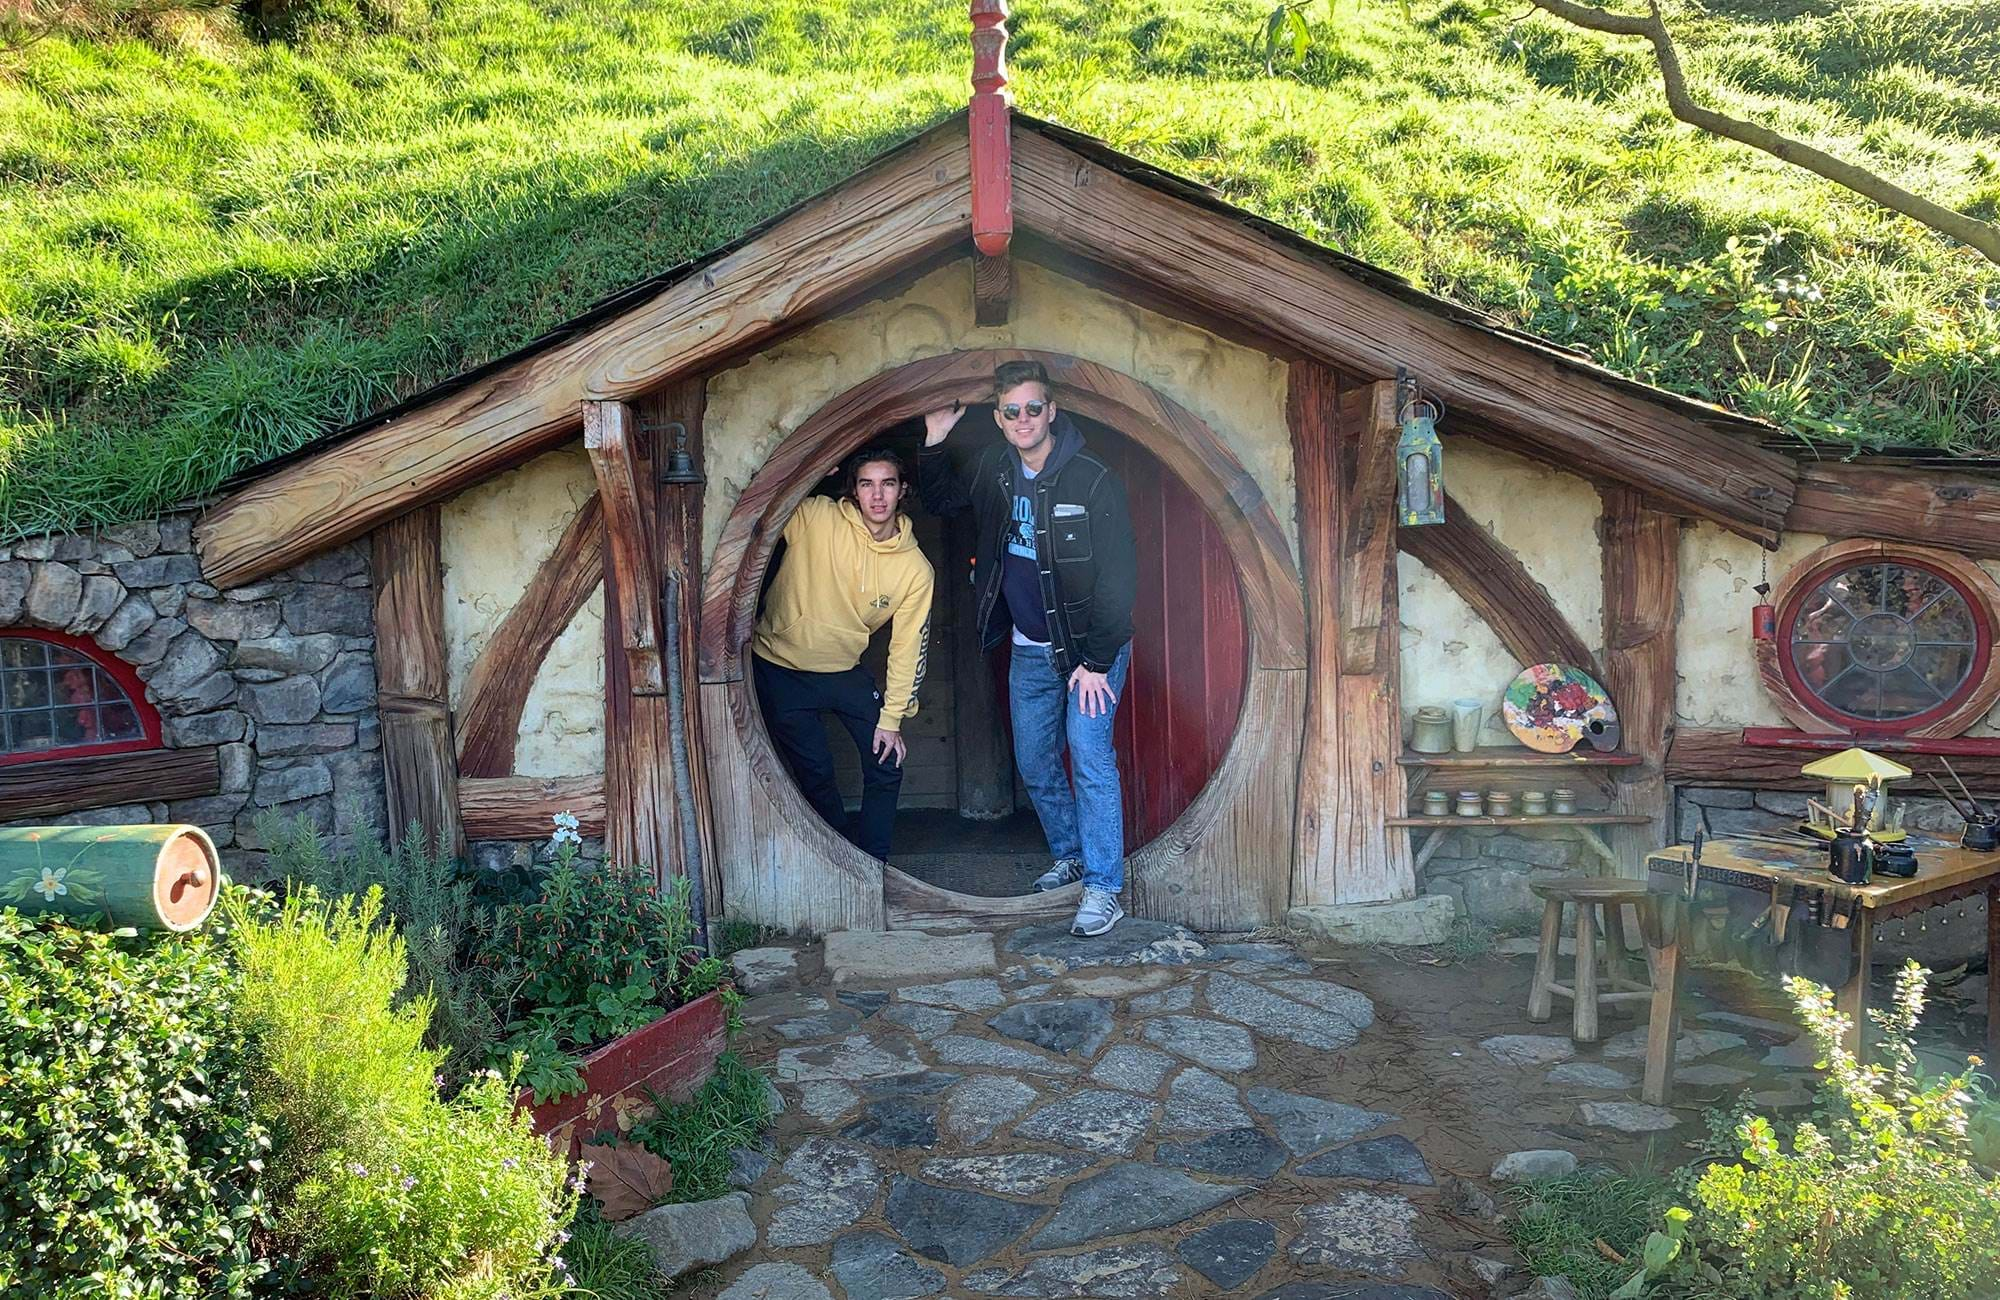 oliver in new zealand at the hobbit house